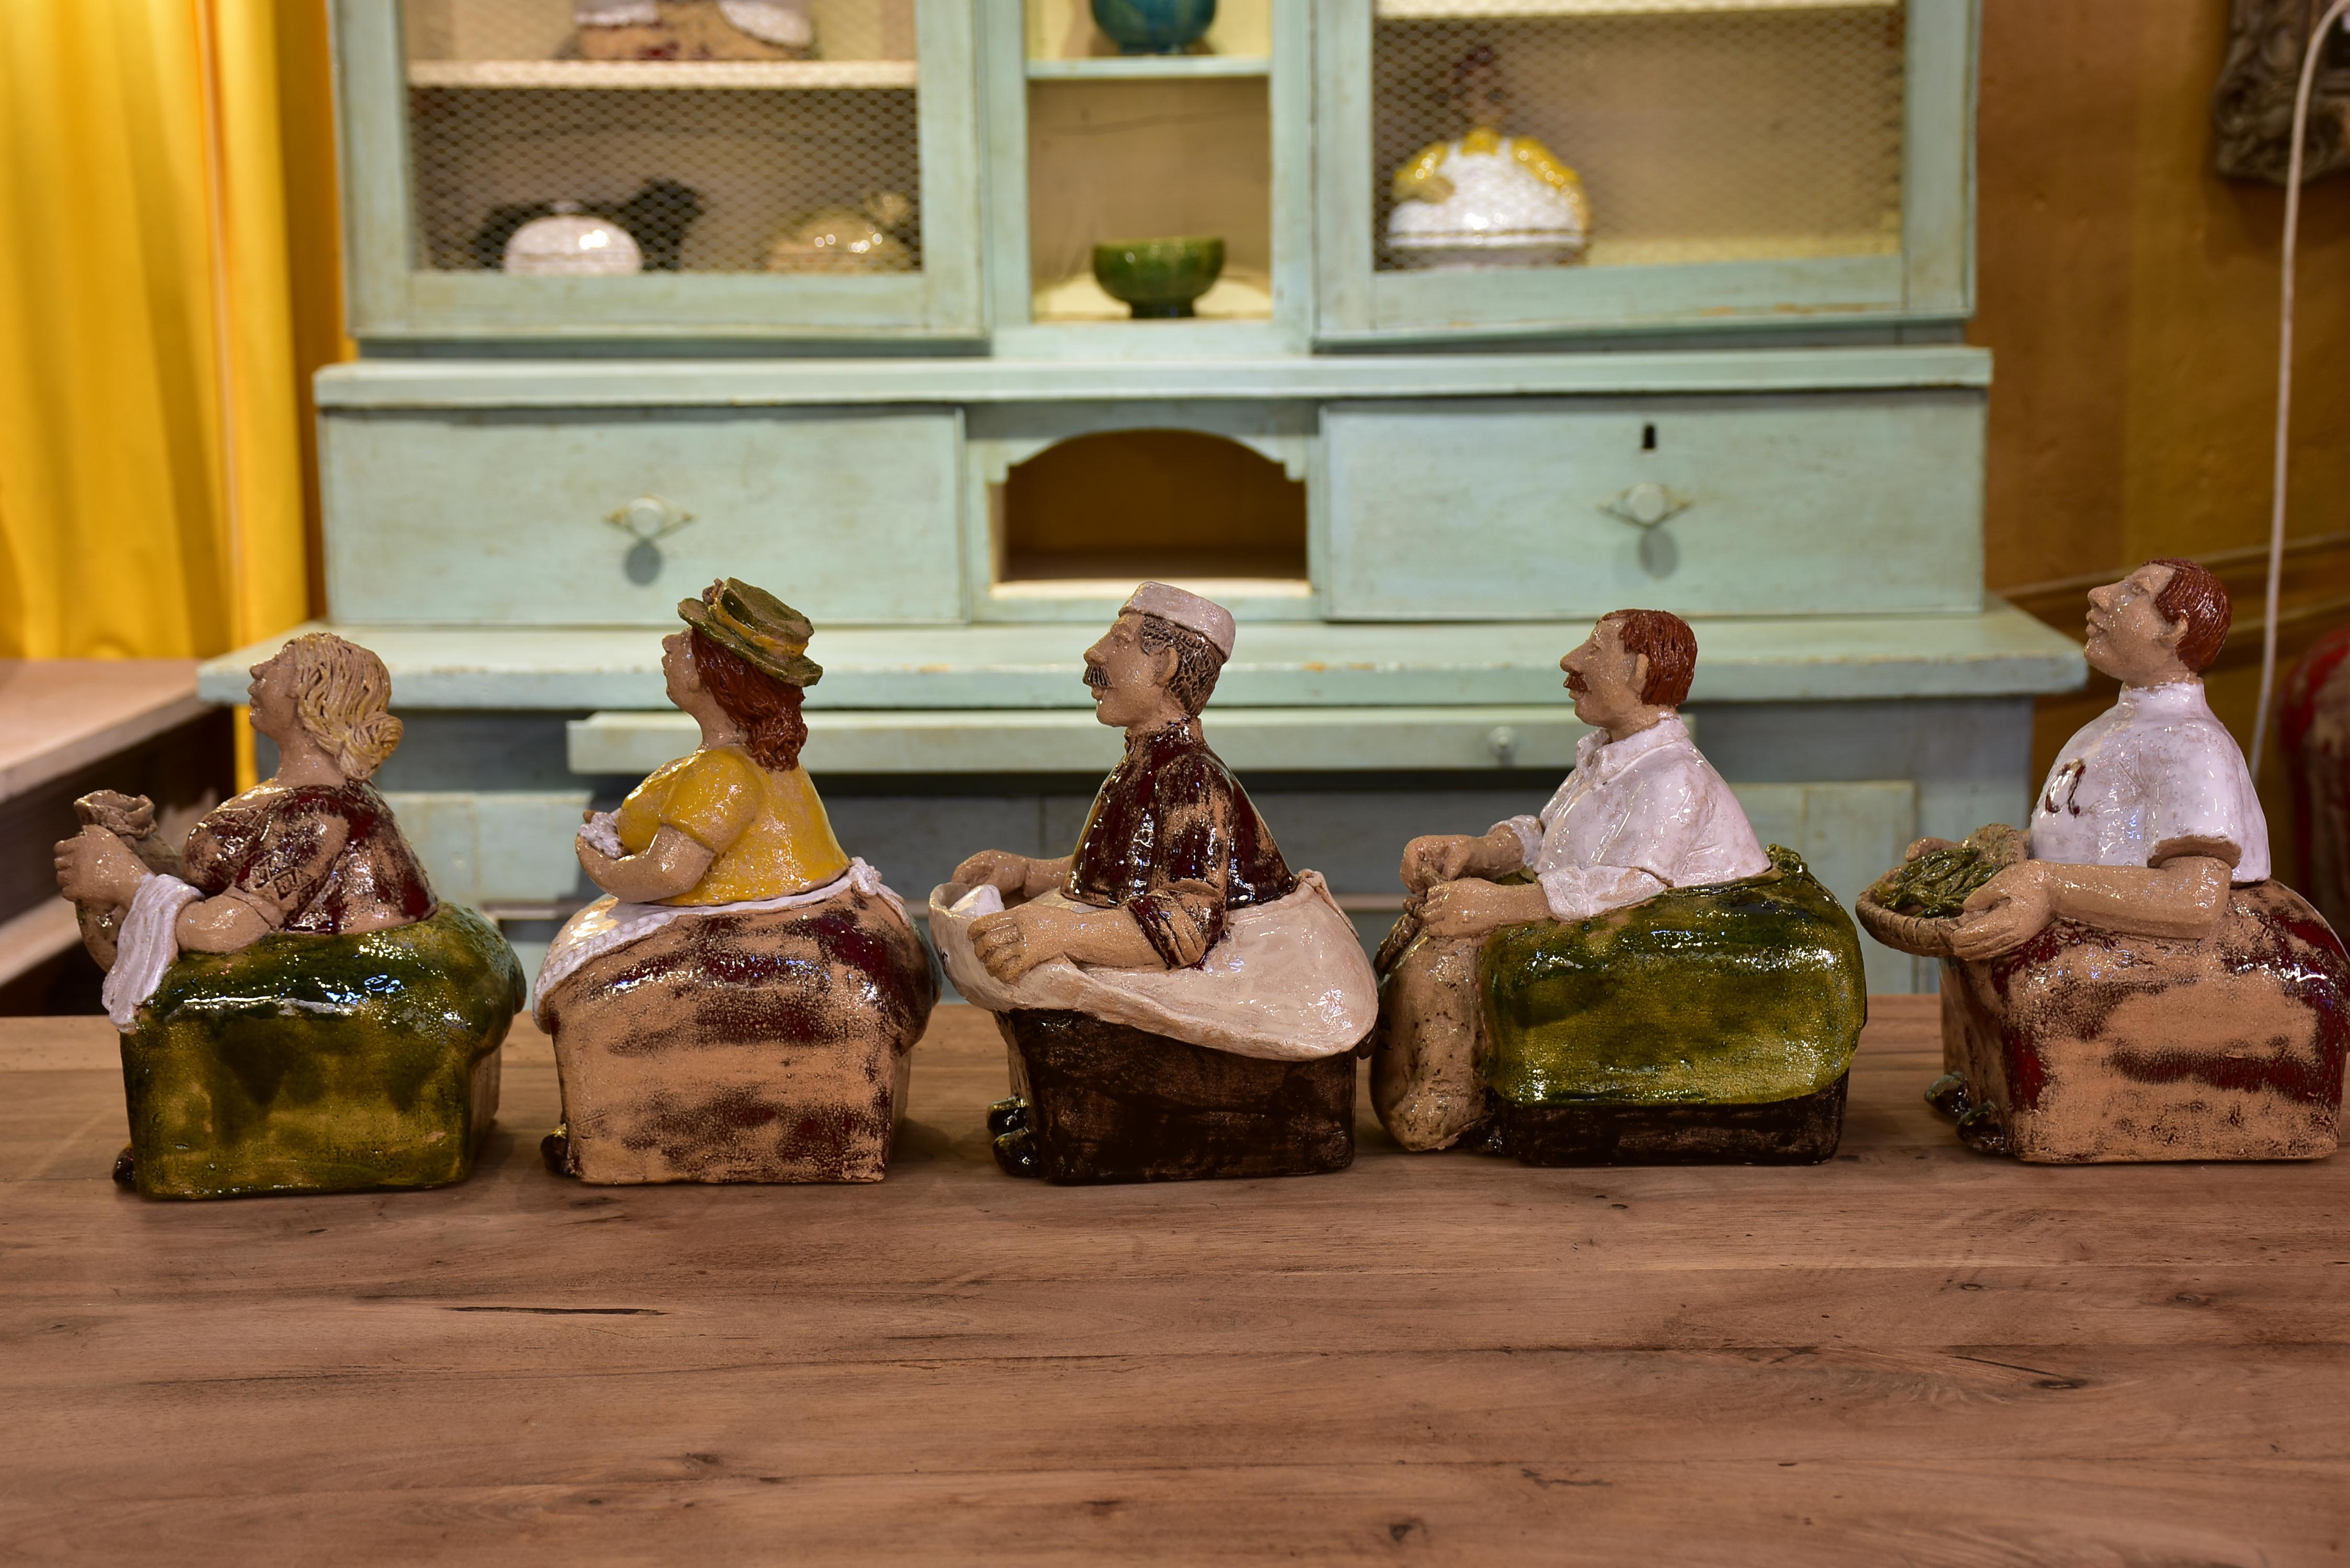 Artisan French pottery storage containers - by order